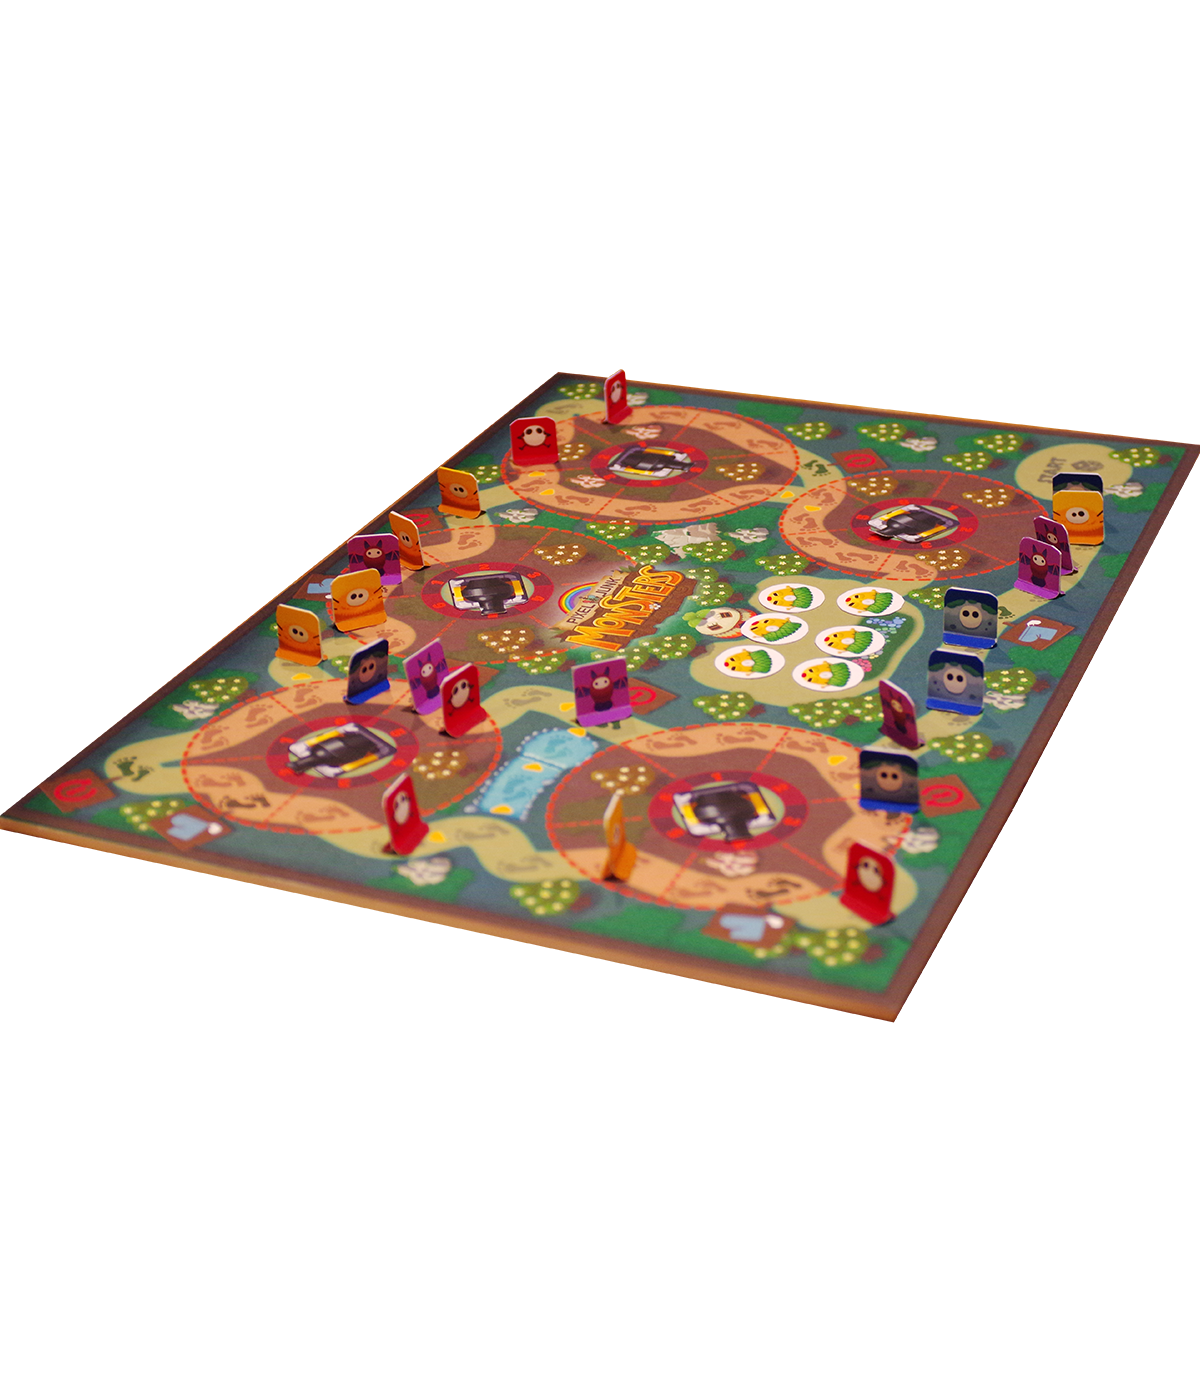 PixelJunk Monsters Board Game (Download Kit)